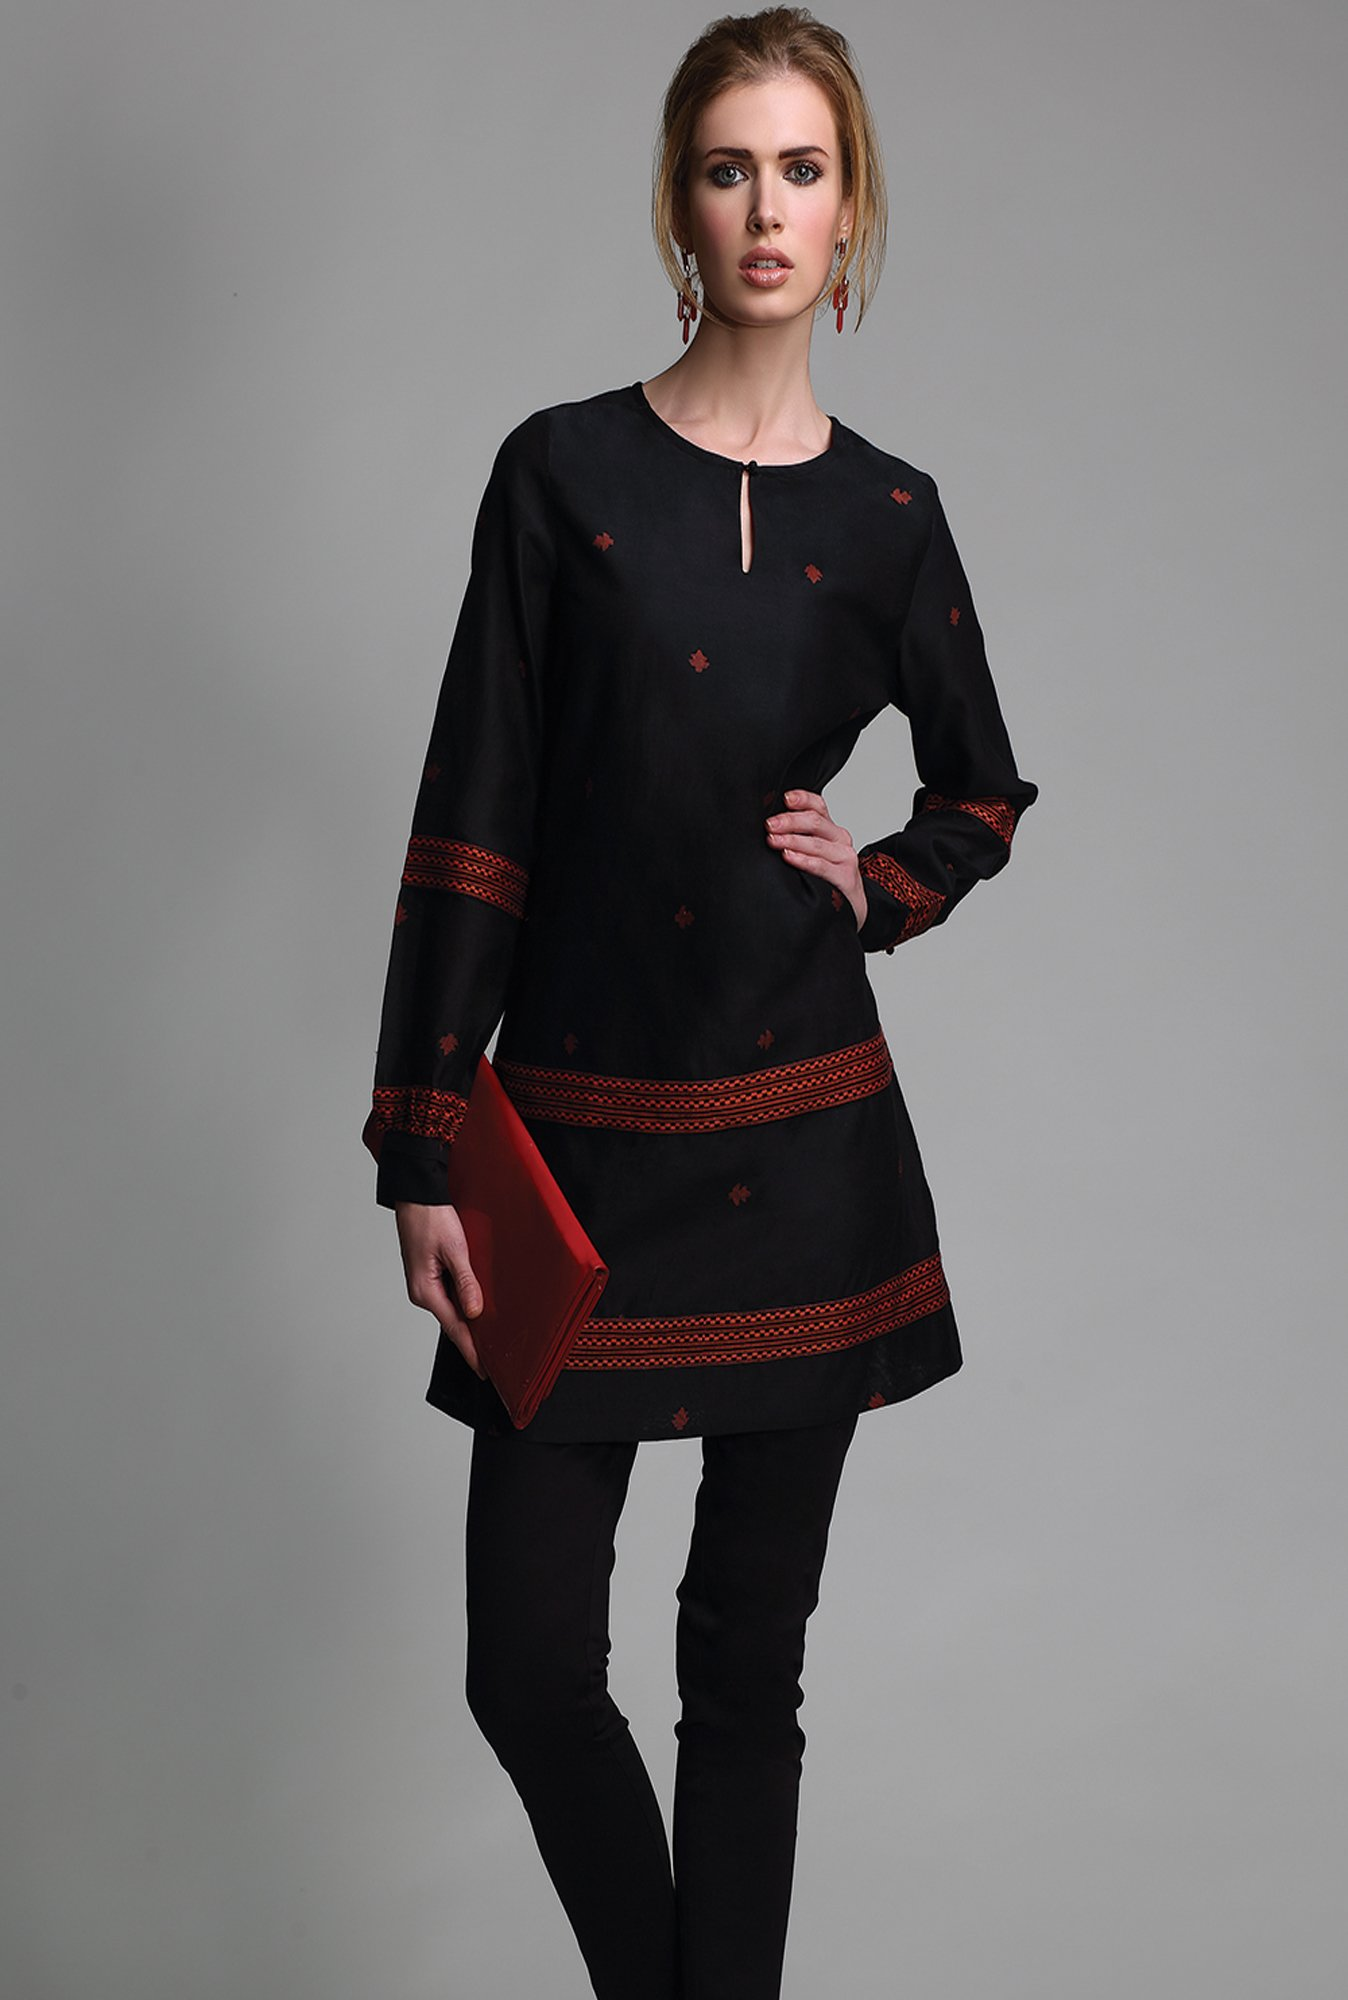 Fabindia Black Embroidered Kurti